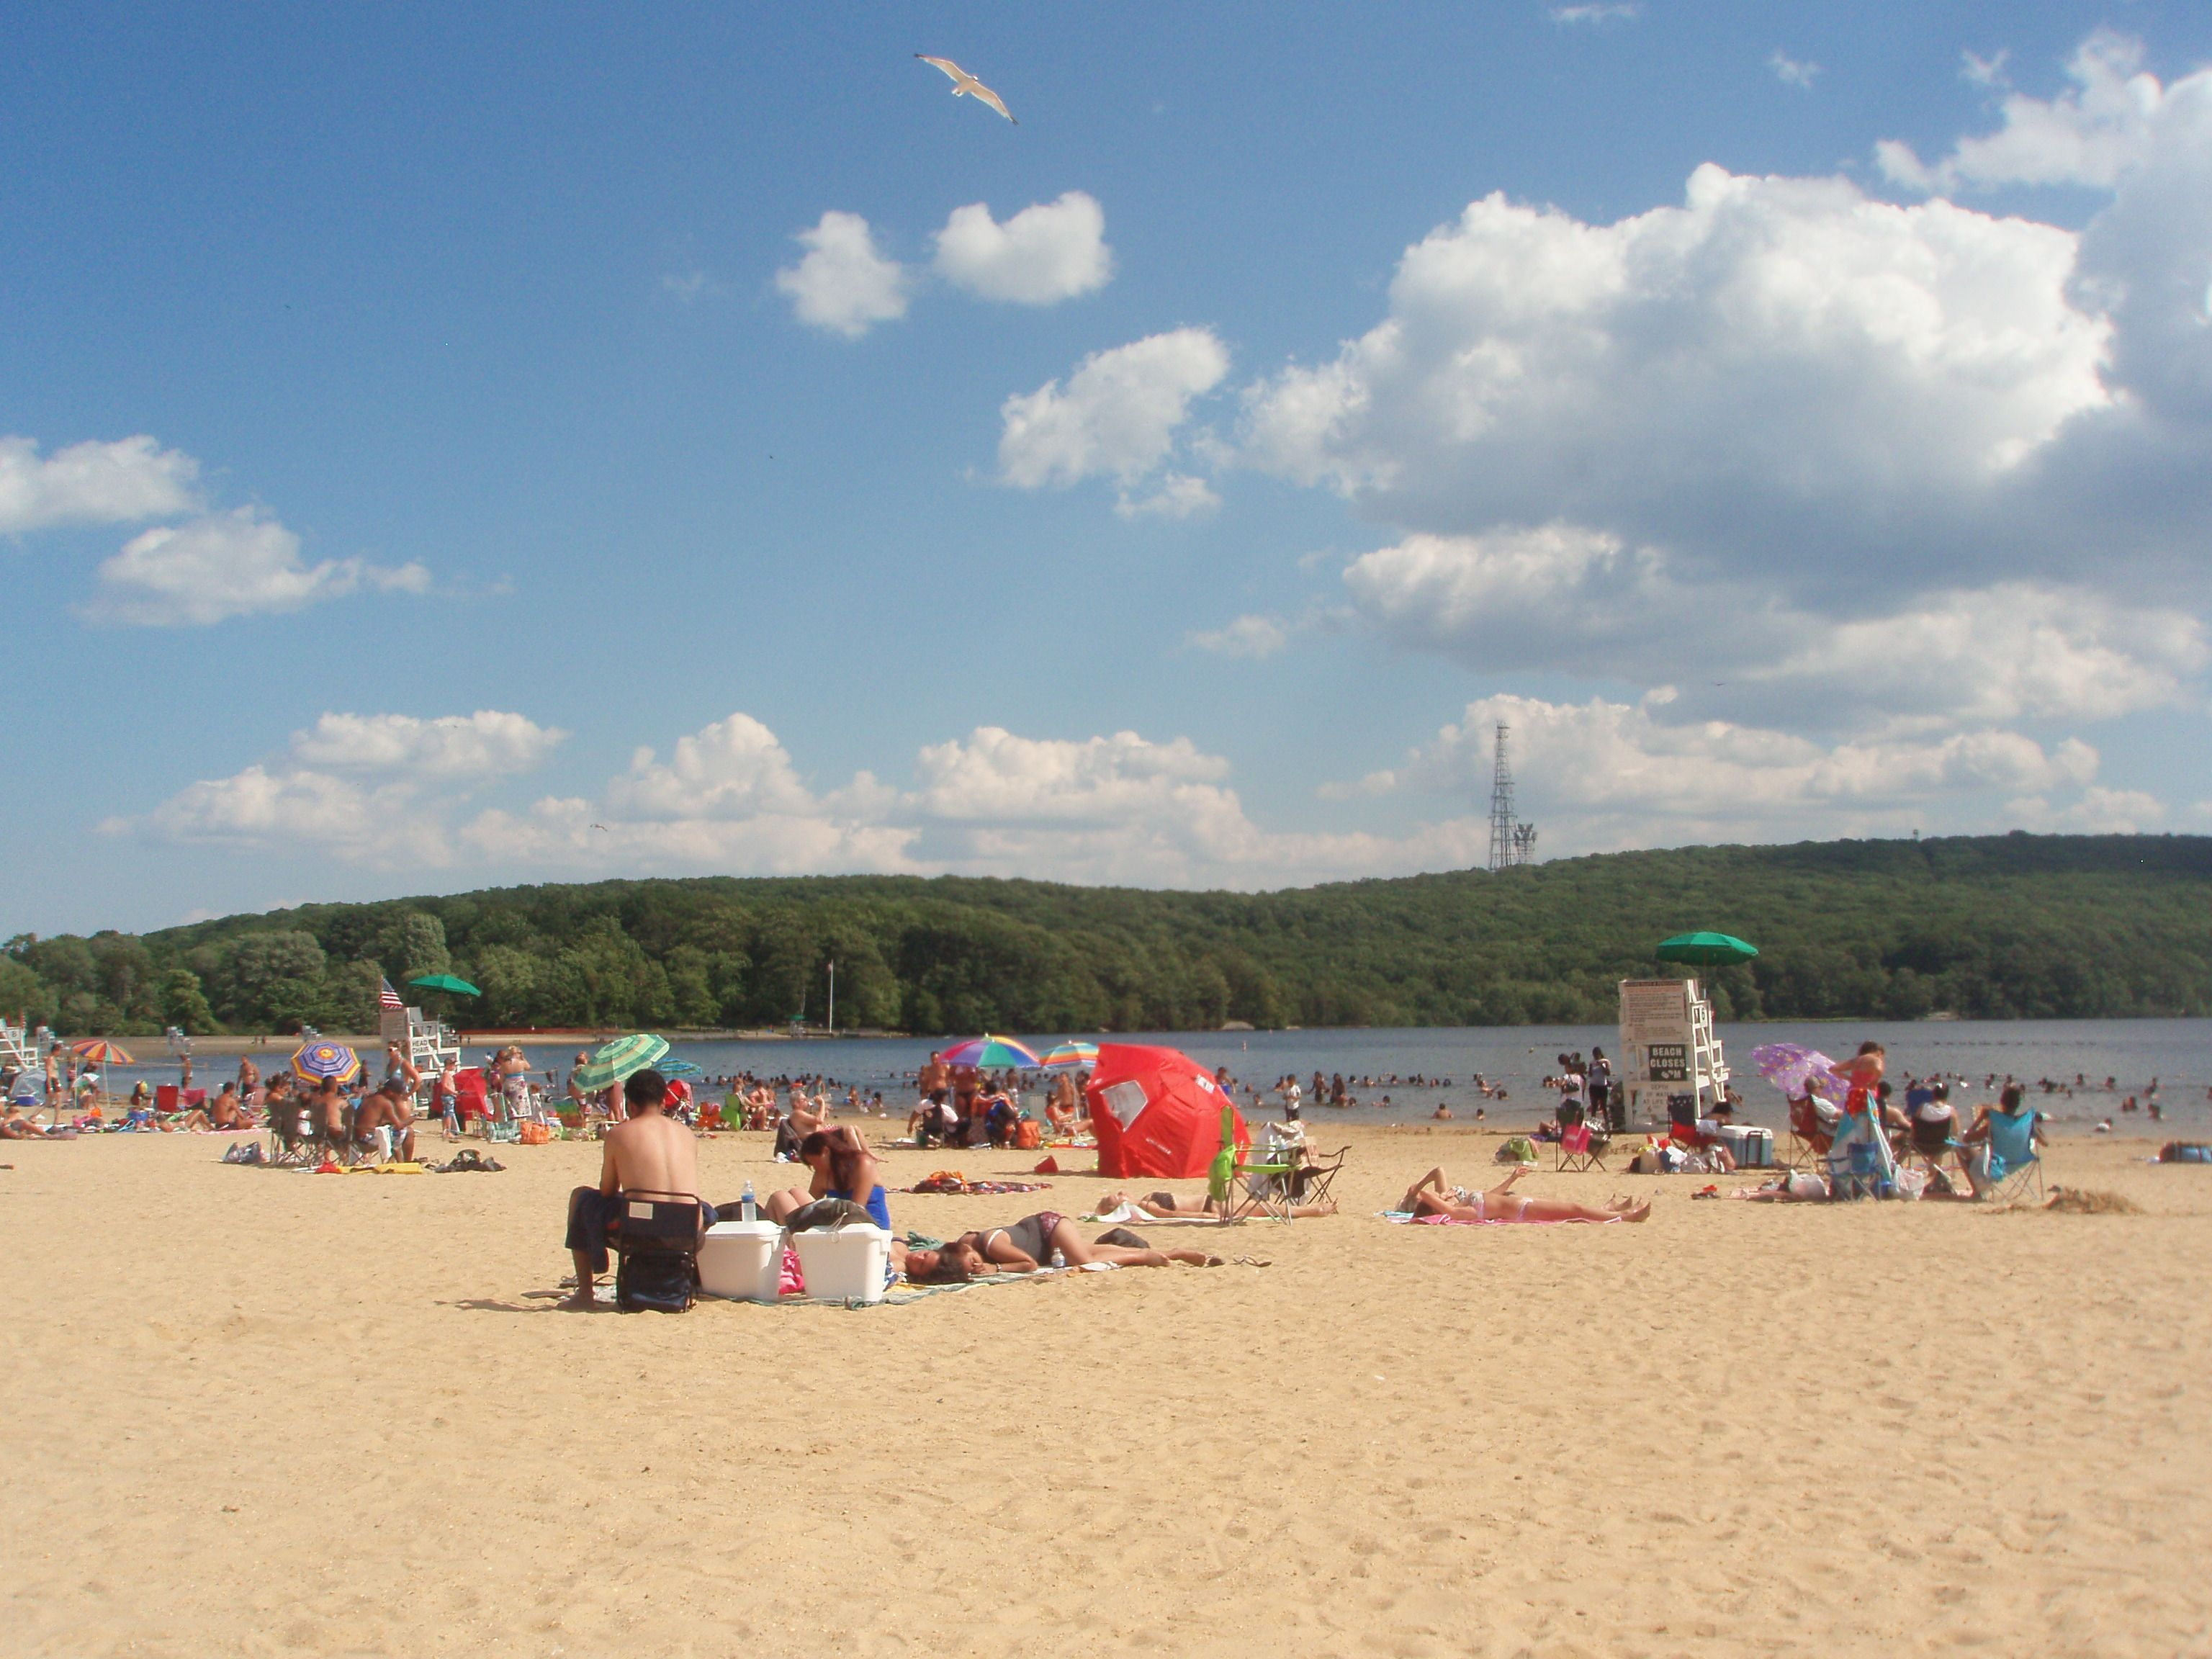 Lake welch beach ny state lake welch ny pinterest lakes lake welch beach ny state sciox Images